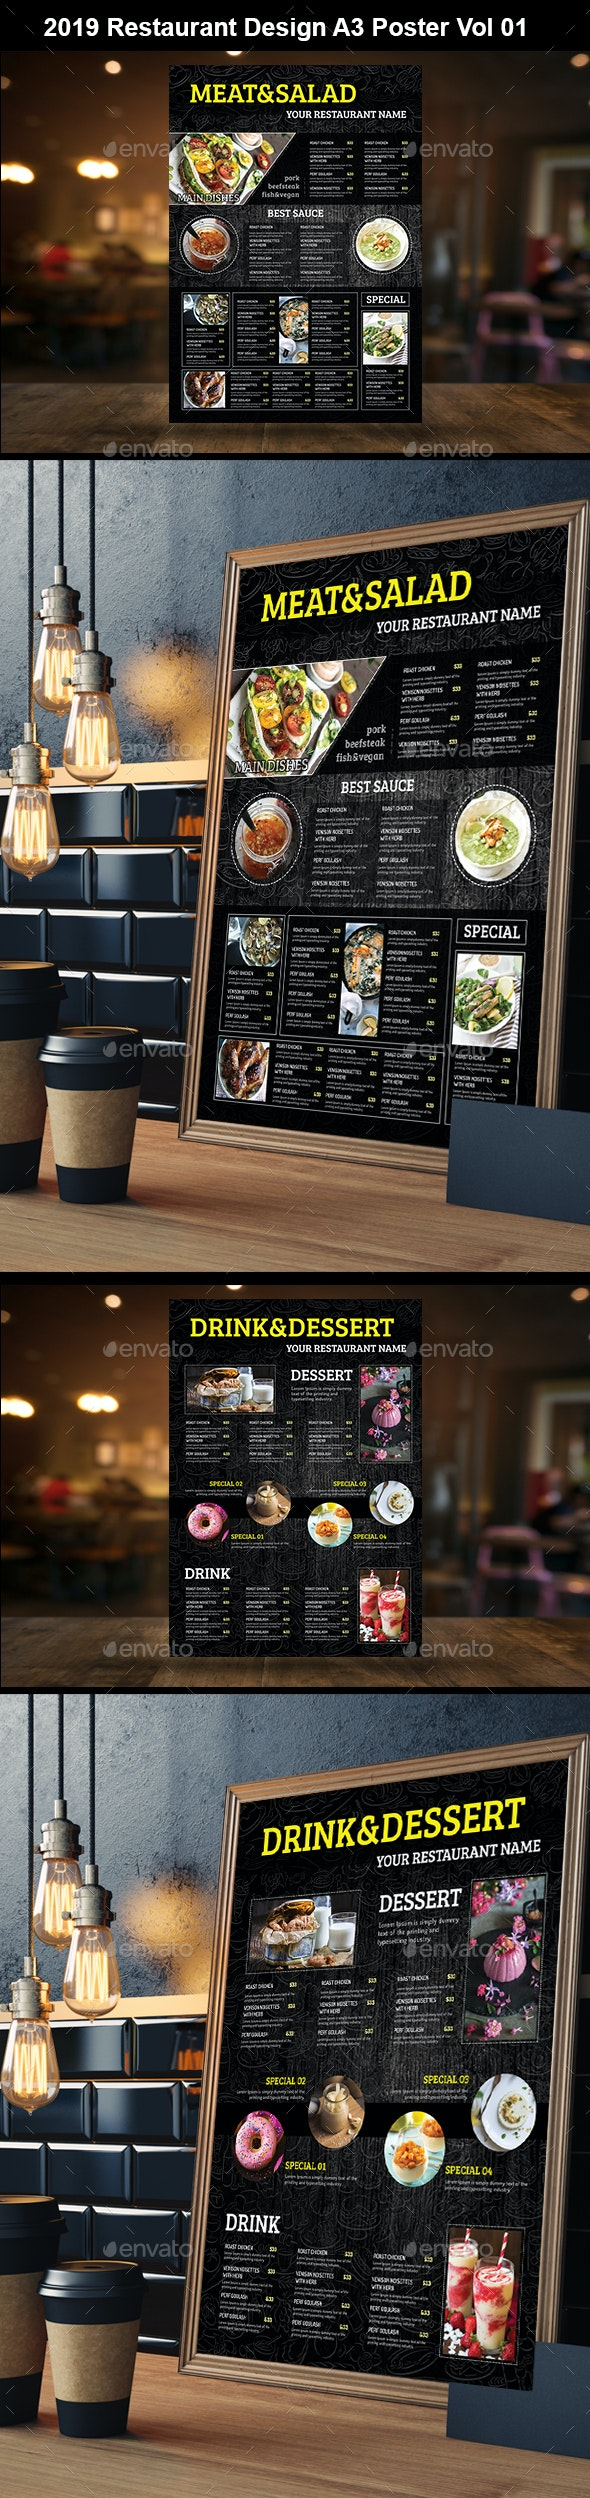 A3 Wall Menu Vol 01 - Food Menus Print Templates